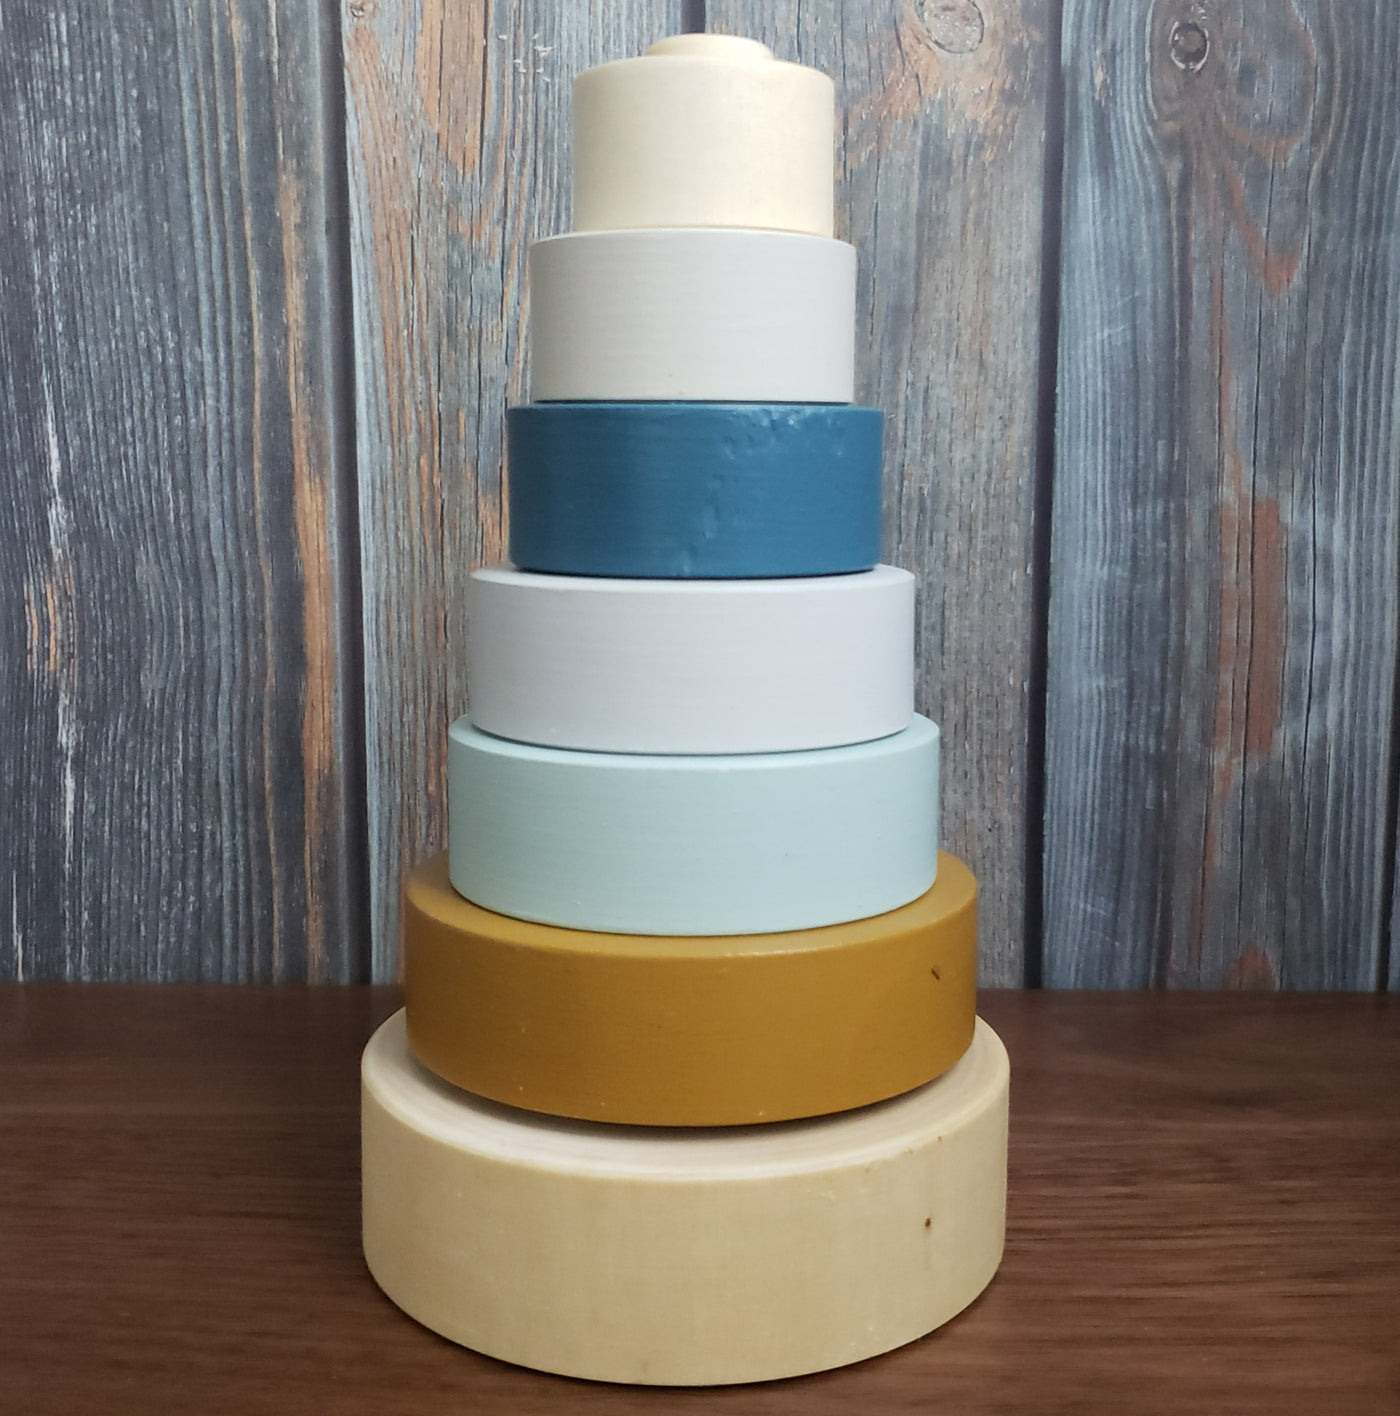 US stockist of Children of the Trees hand painted ring stacker wooden toy in blues and with a striking gold ring